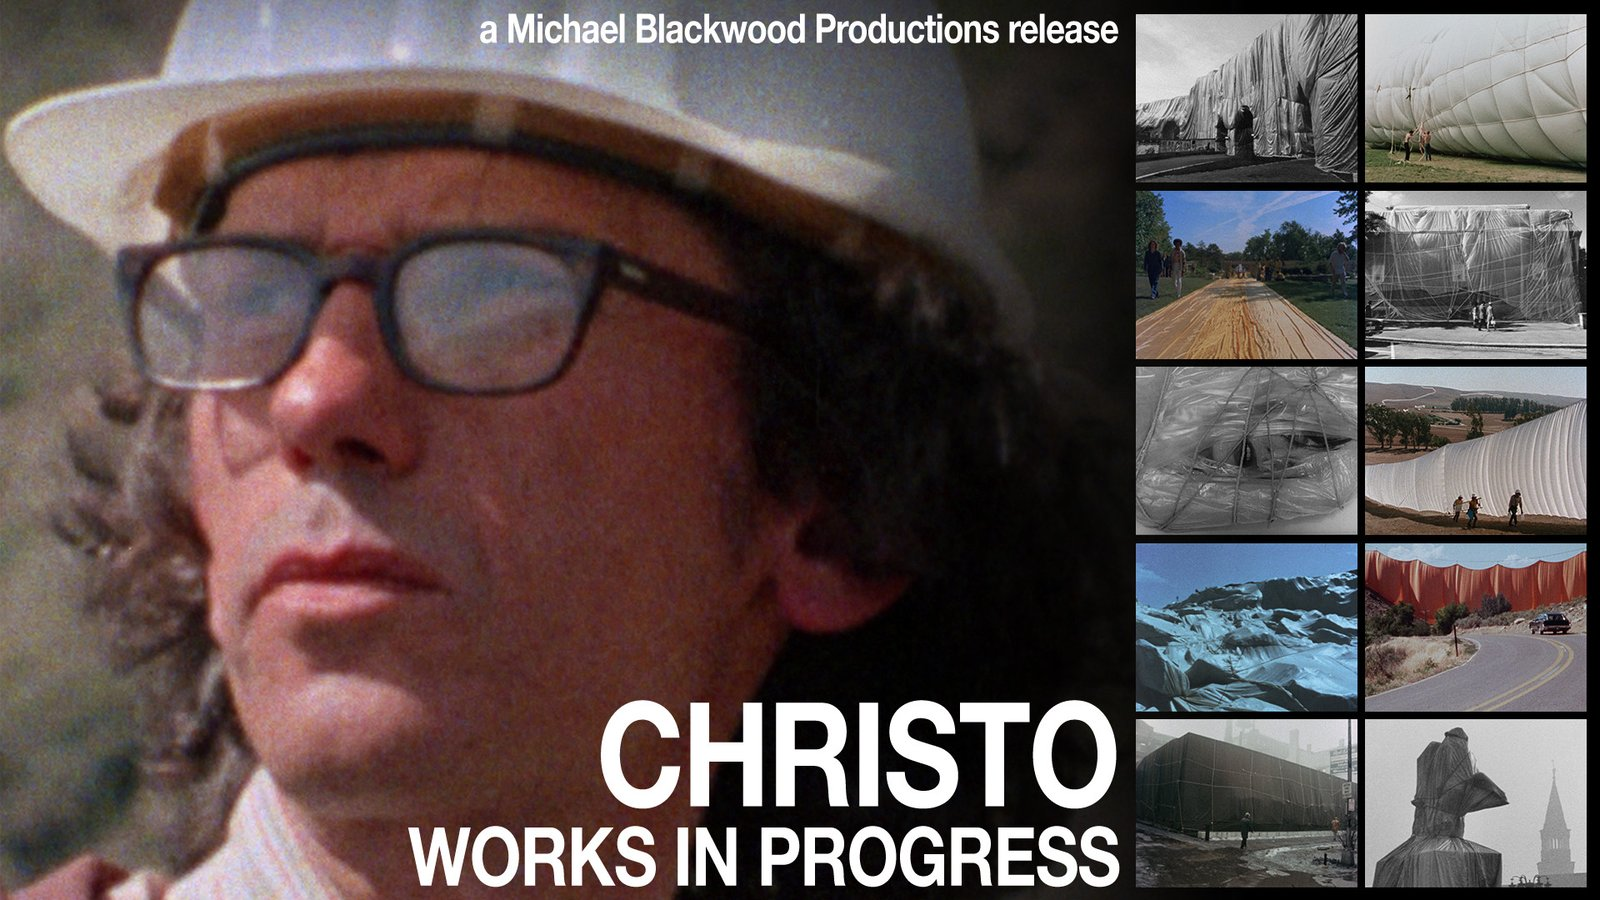 Christo: Works in Progress - The Artists' Environmental Installations